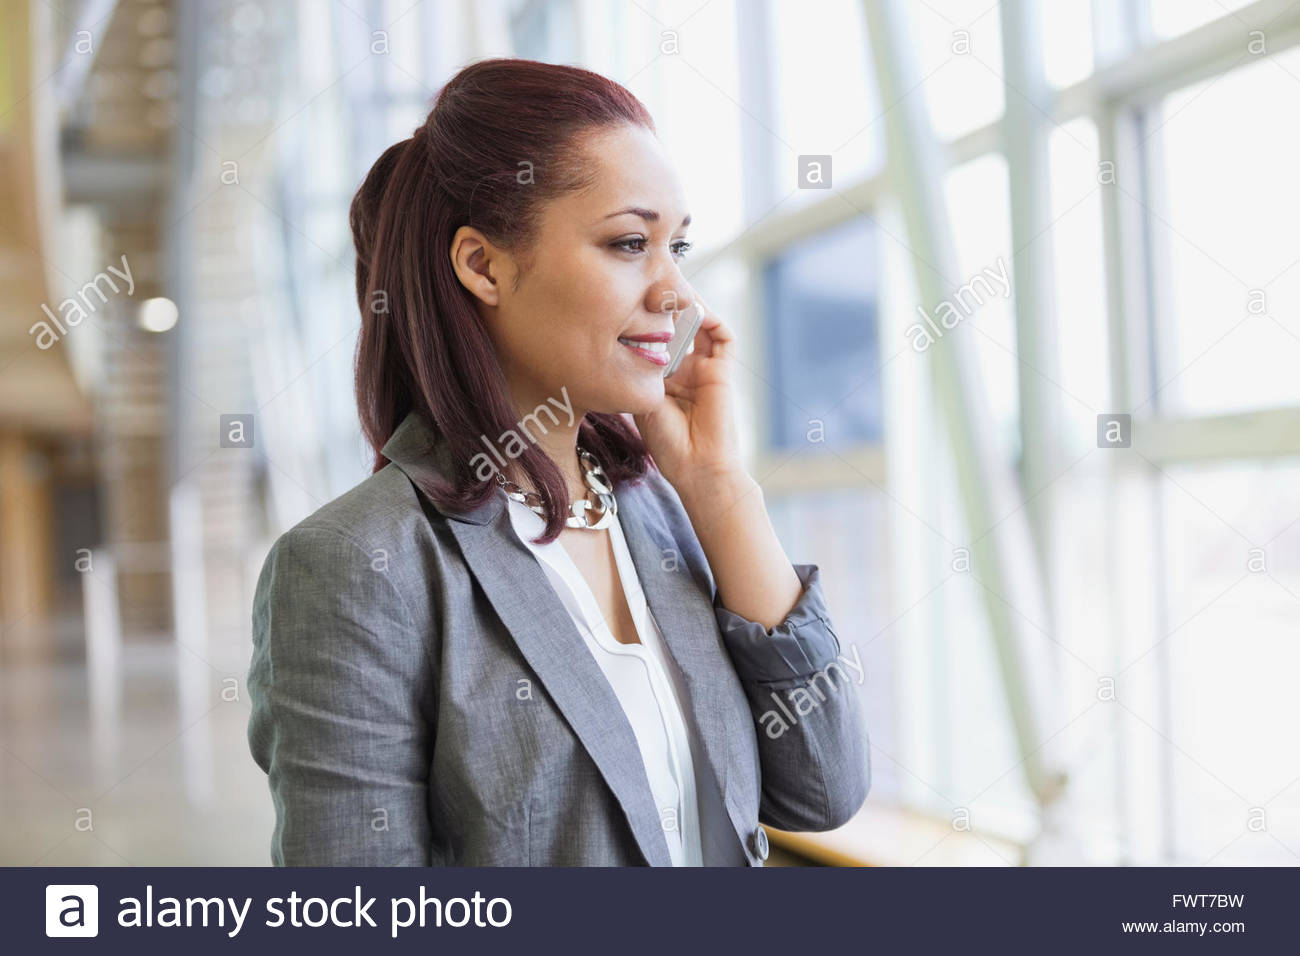 Businesswoman using mobile phone by window in office Banque D'Images